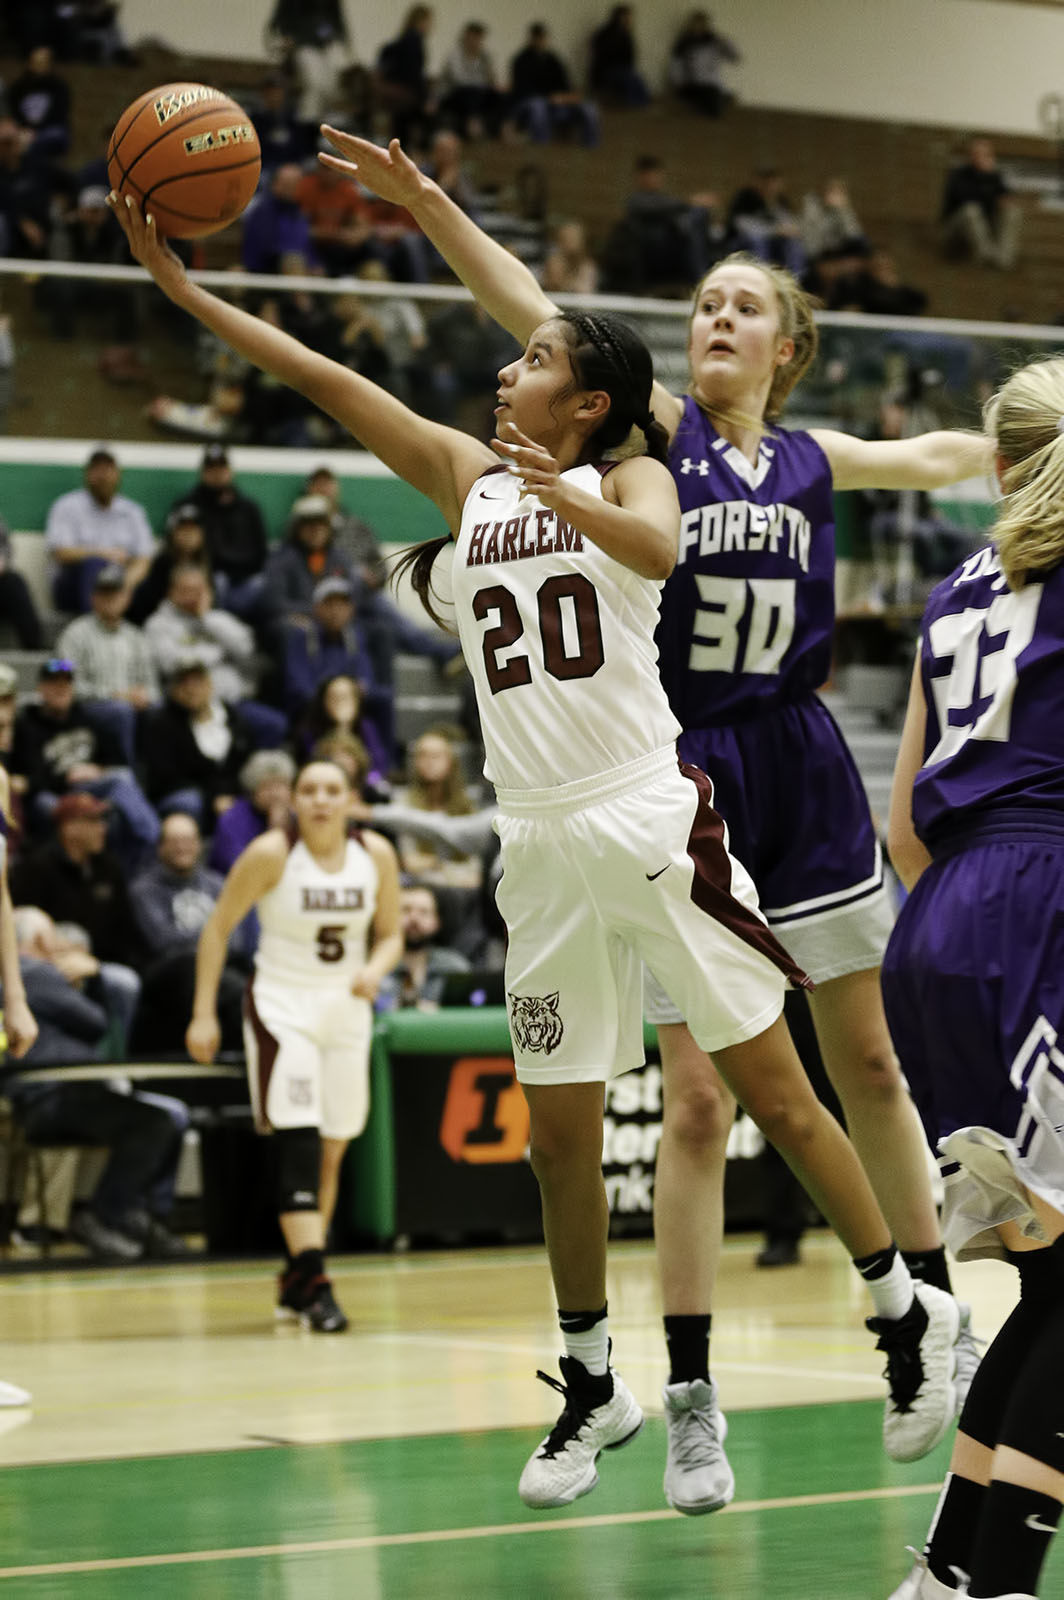 State B girls basketball: Harlem vs. Forsyth